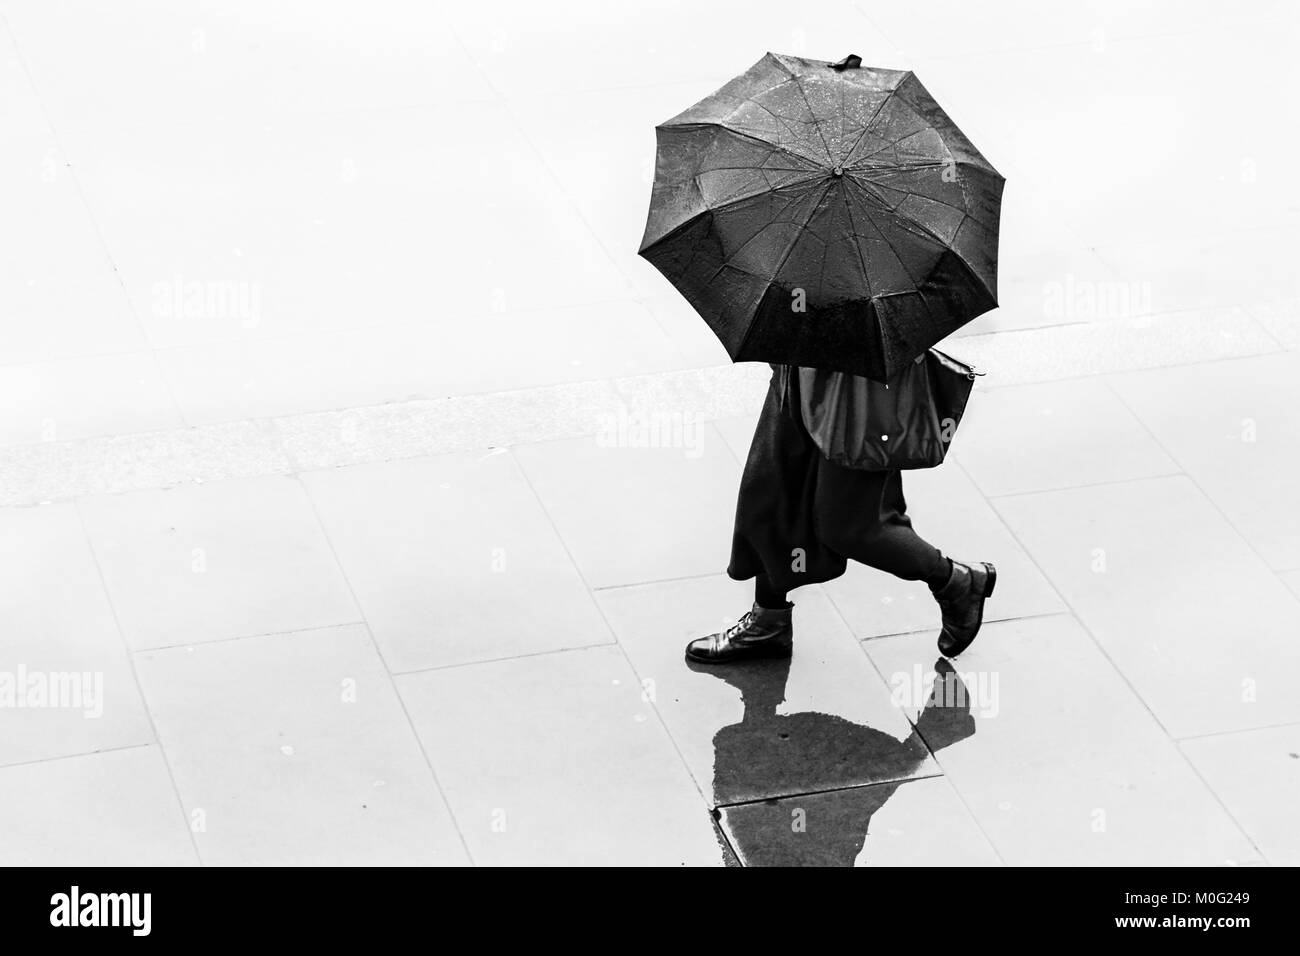 London Black and white street photography: Woman walking in rain with umbrella. - Stock Image